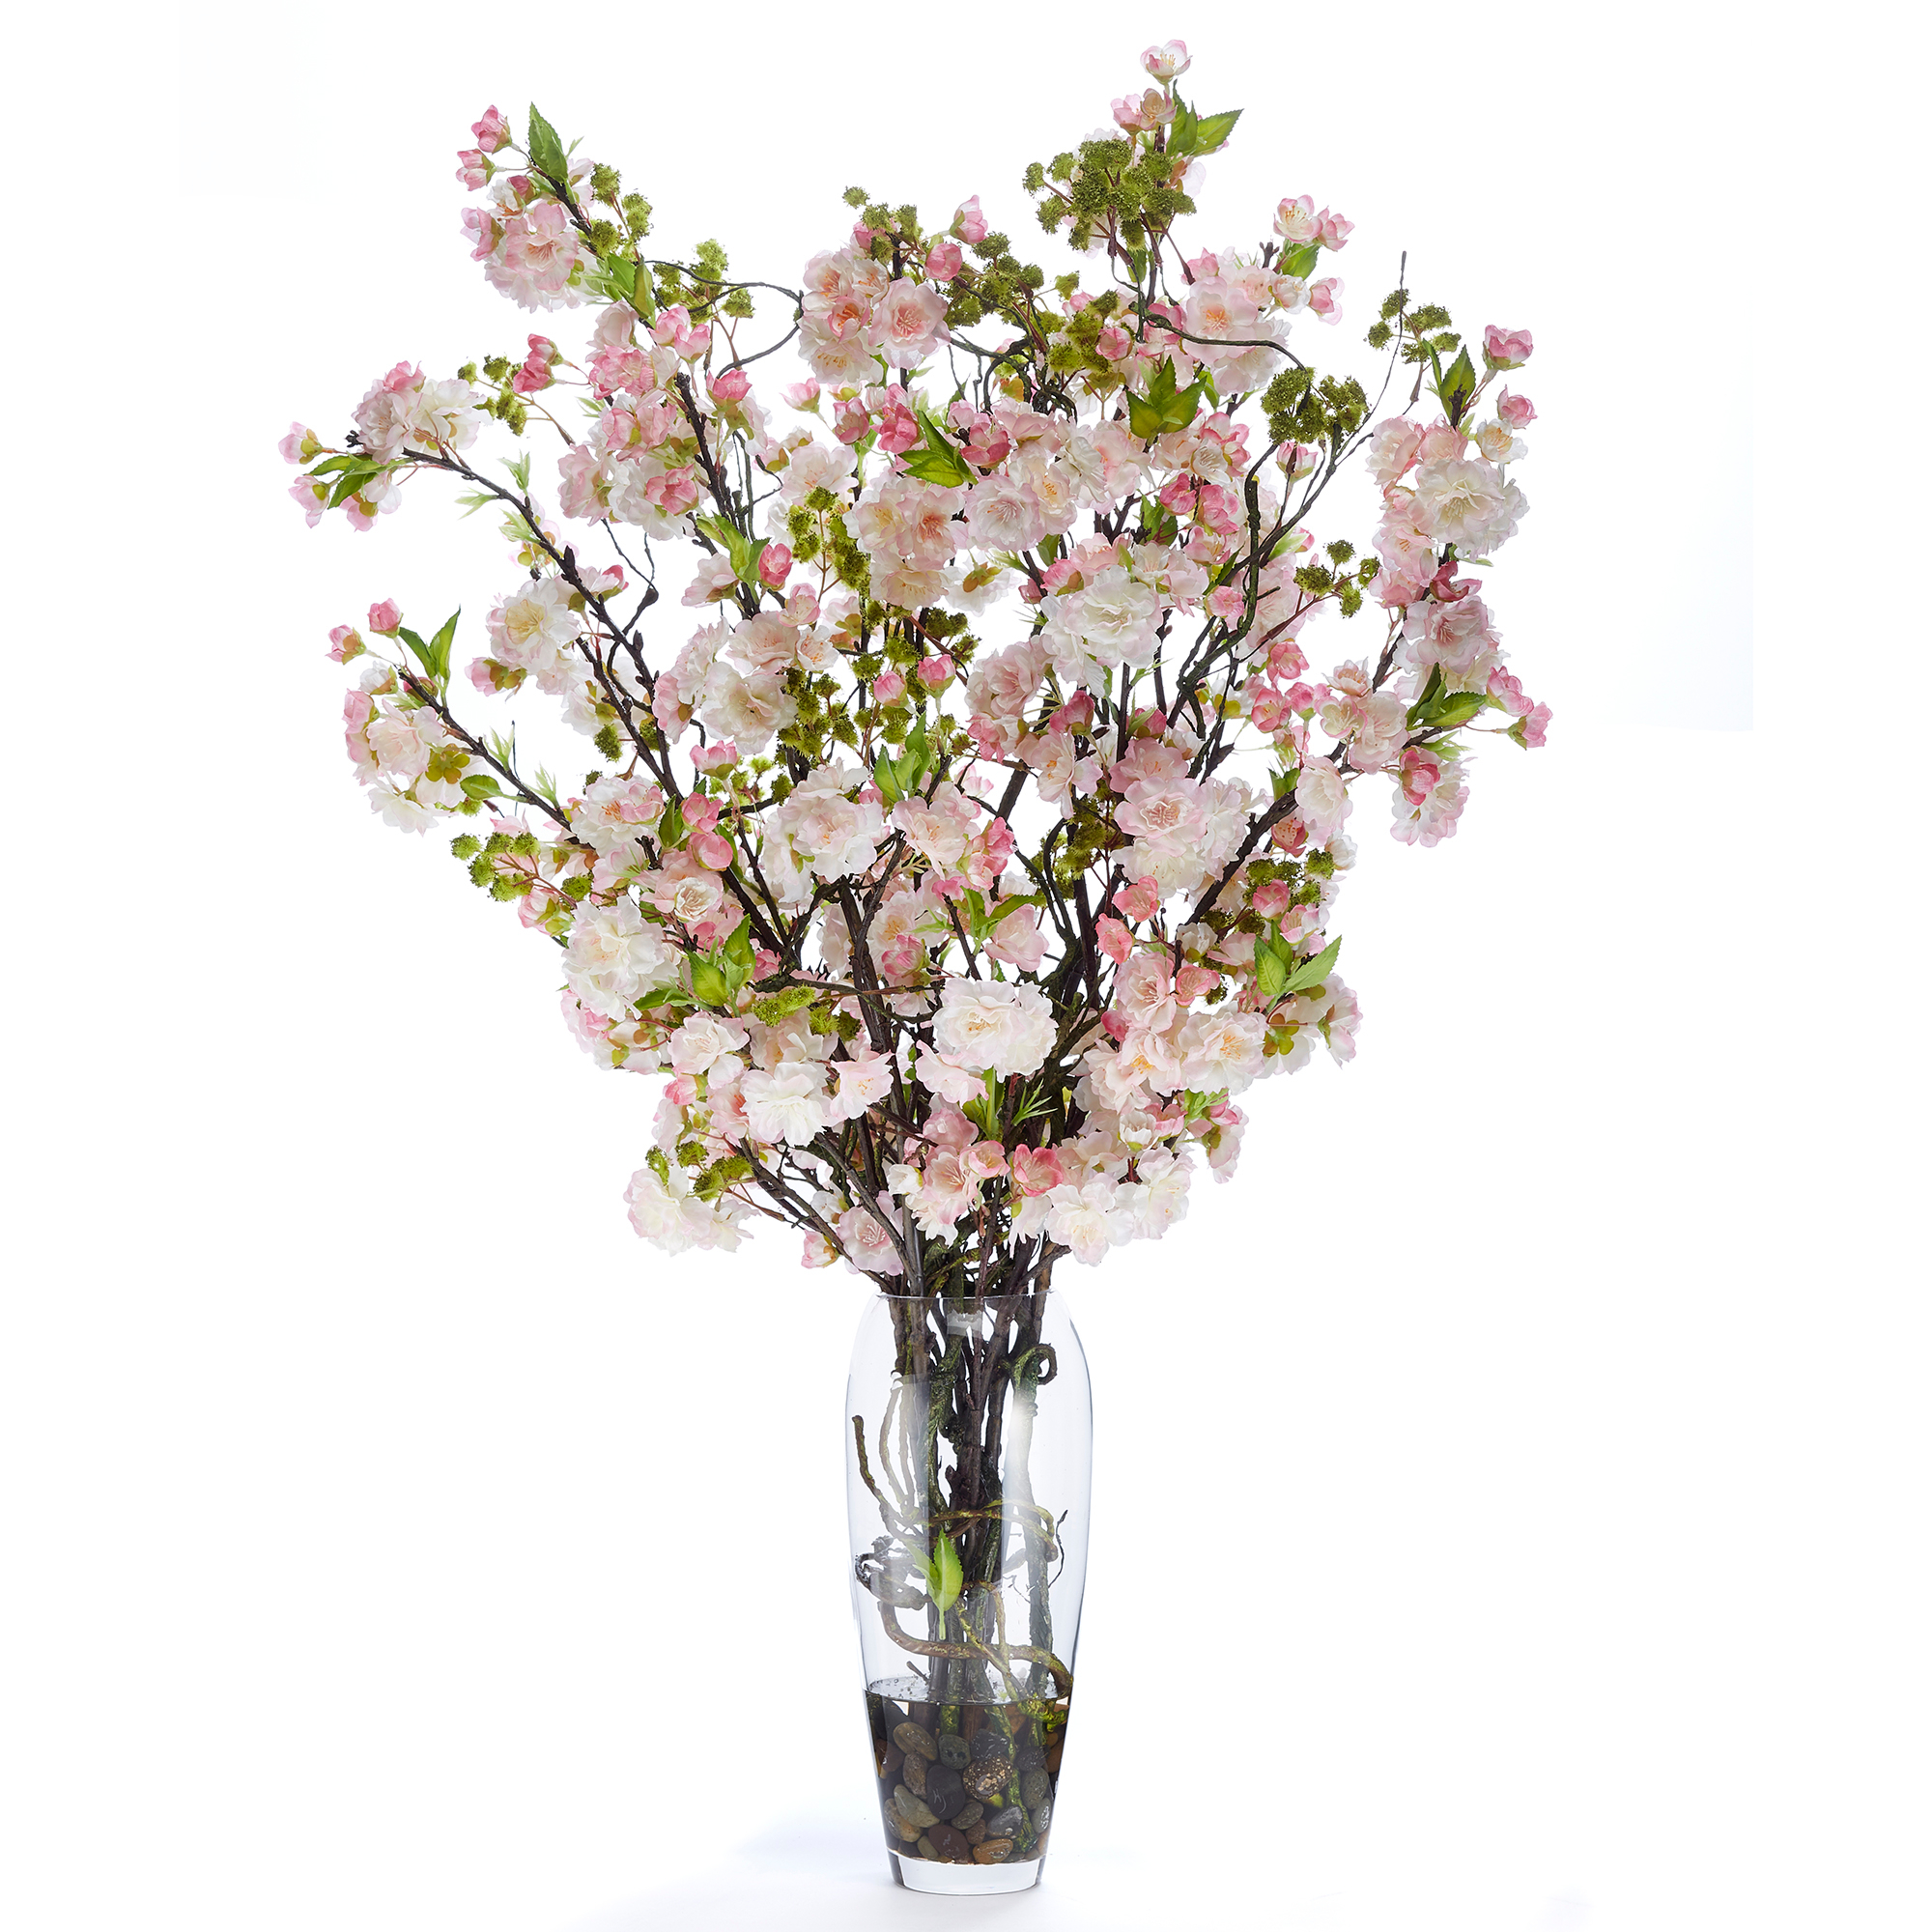 Sakura Cherry Blossom Arrangement